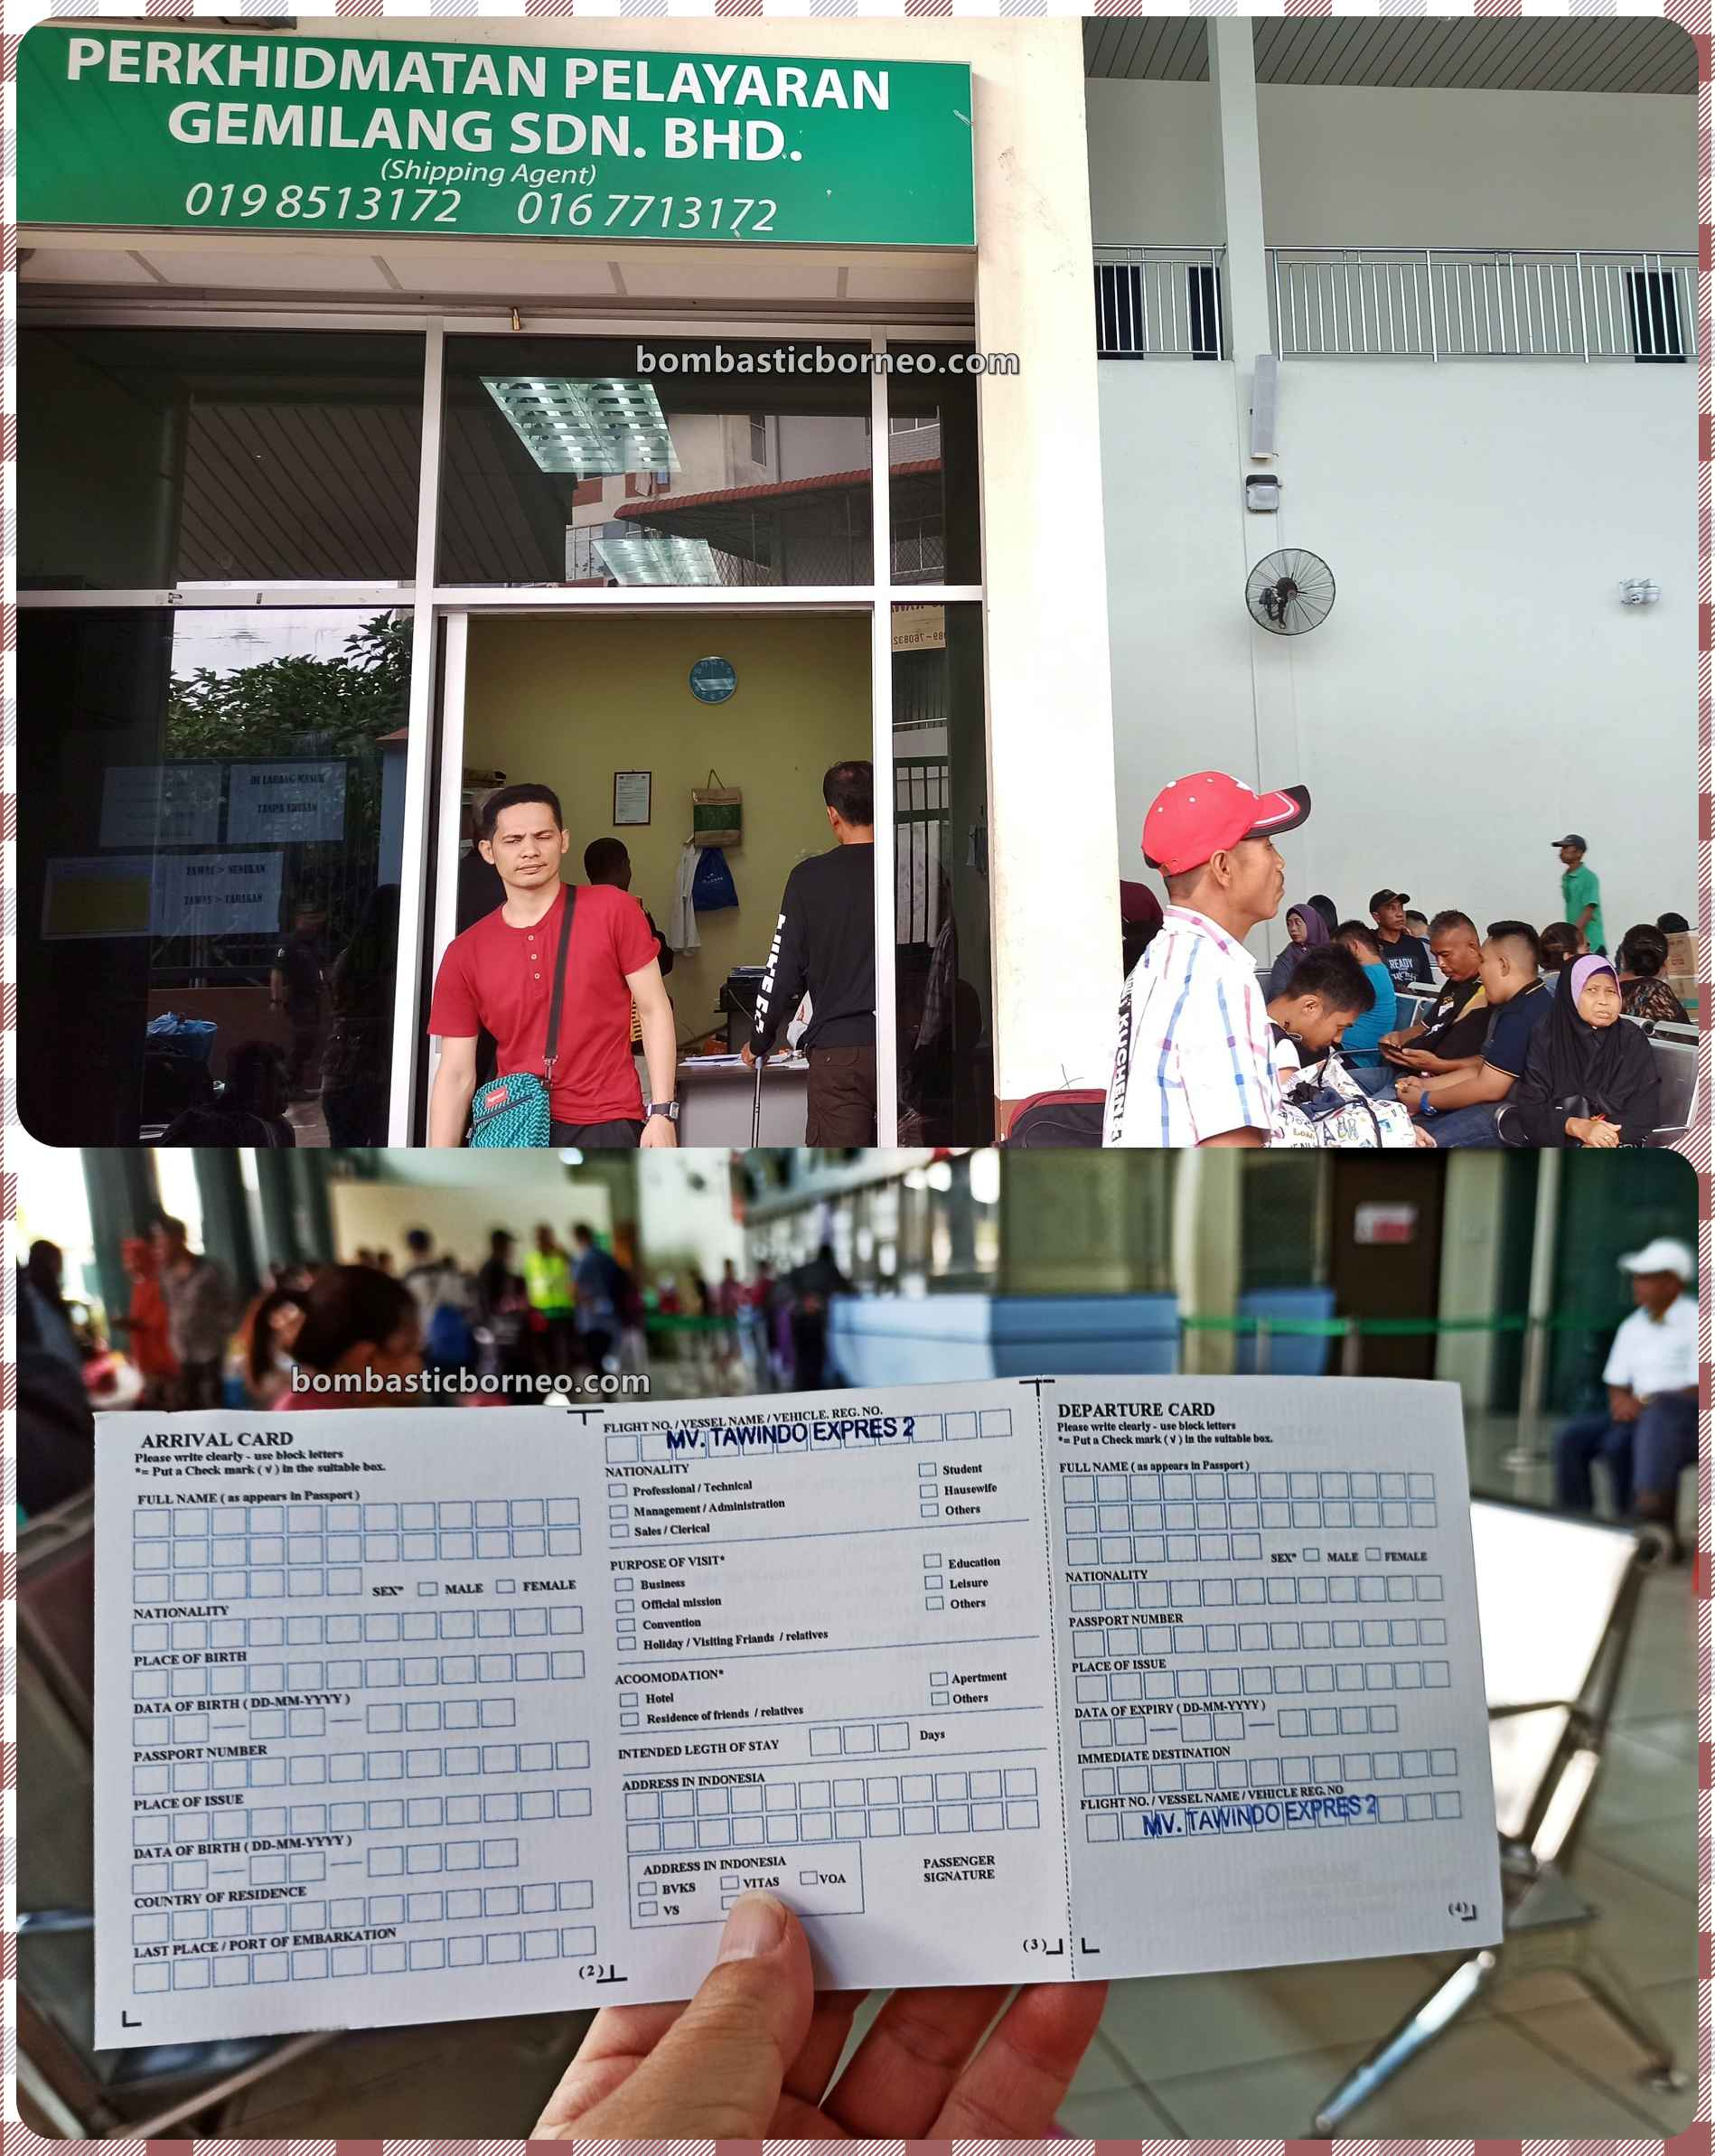 Ferry terminal, Express Boat Ride, backpackers, Imigrasi, information, Kapal Besar, MV Tawindo, port, Malaysia, Tourism, Transportation, Border crossing, Borneo, 跨境婆罗洲游踪, 沙巴斗湖轮渡码头